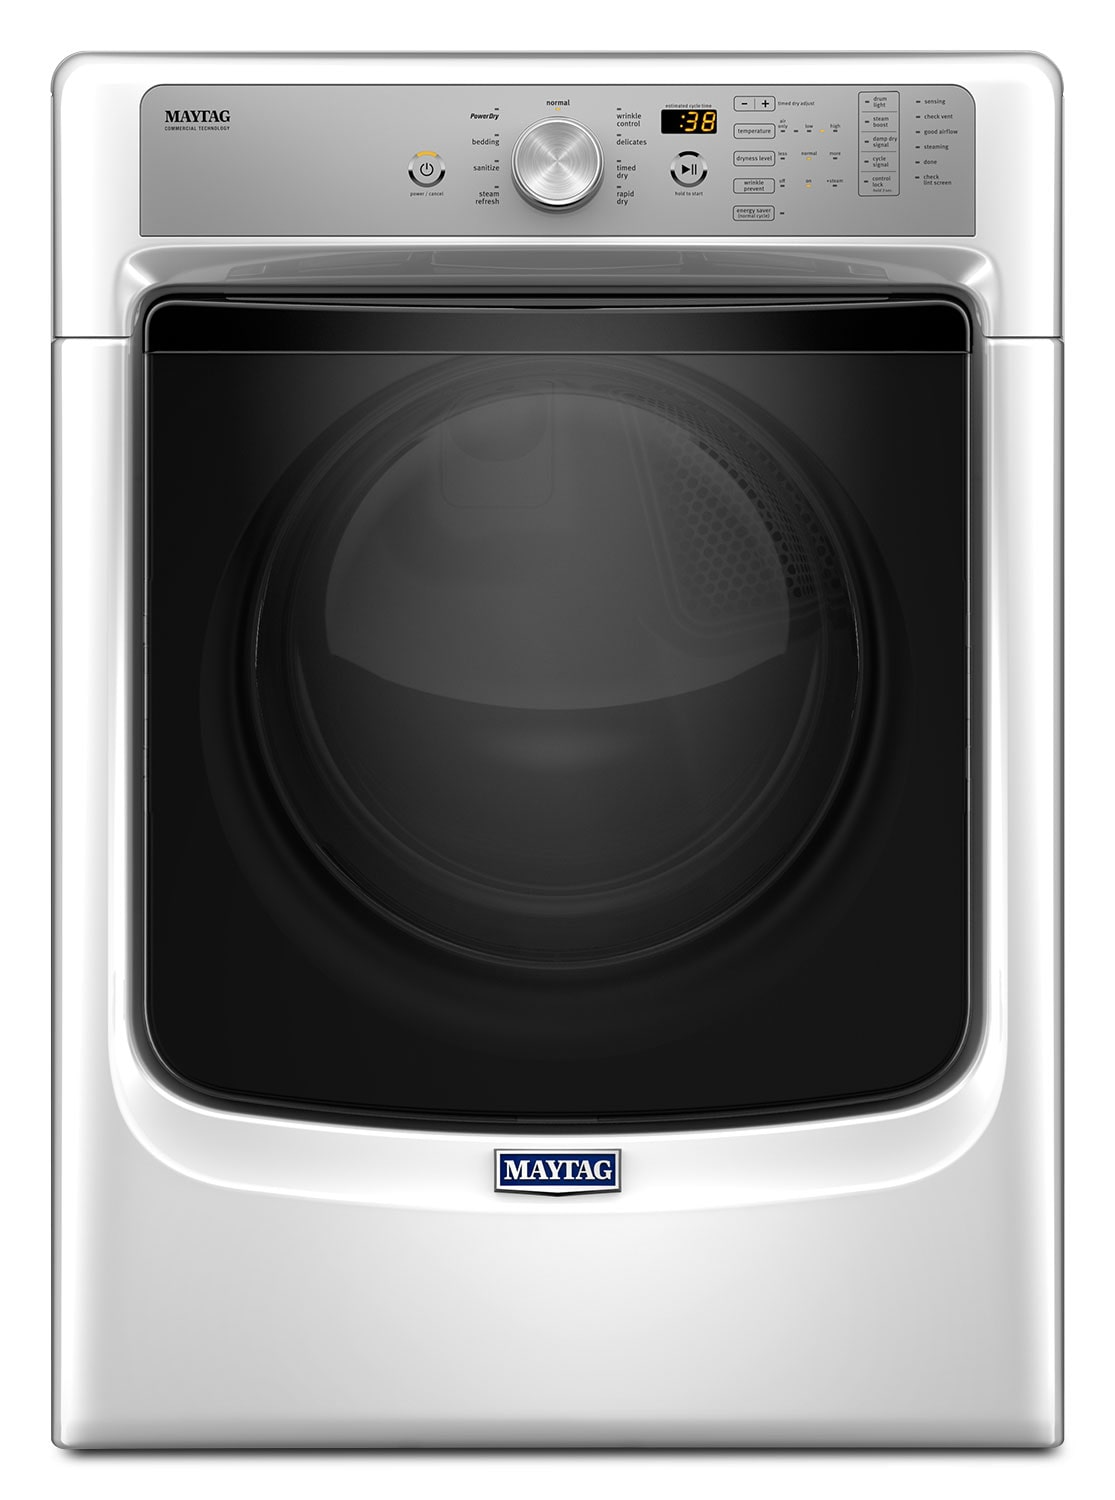 Maytag 7.4 Cu. Ft. Electric Dryer – YMED5500FW